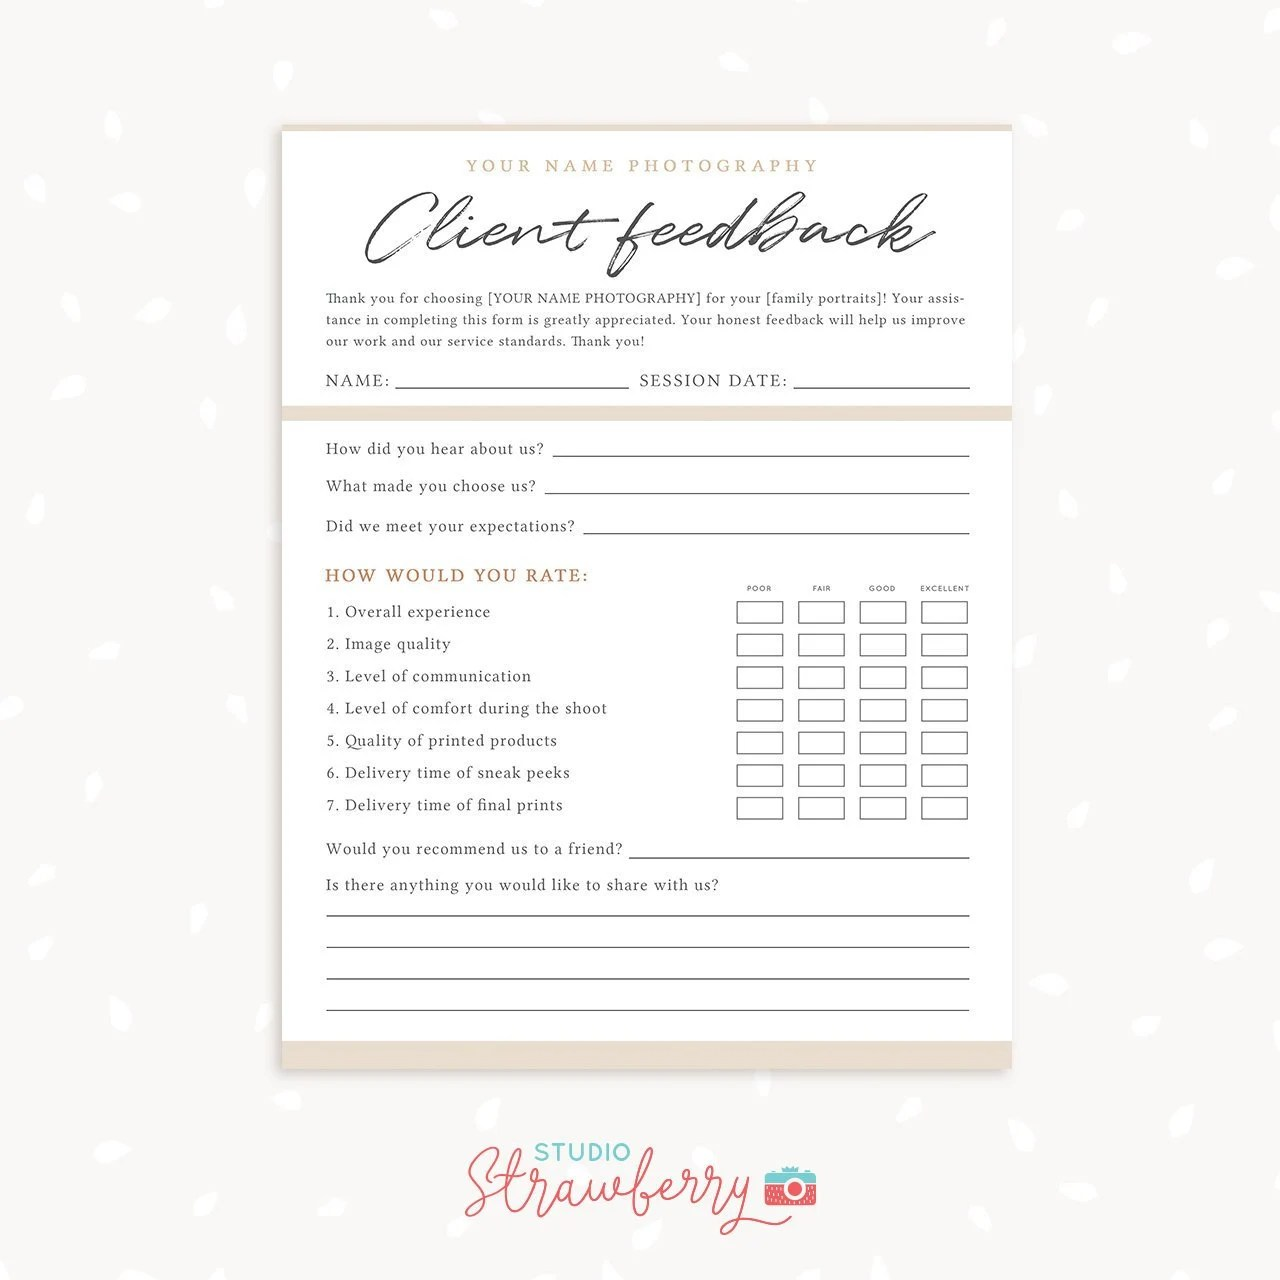 Client Feedback Form For Photographers Customer survey Etsy